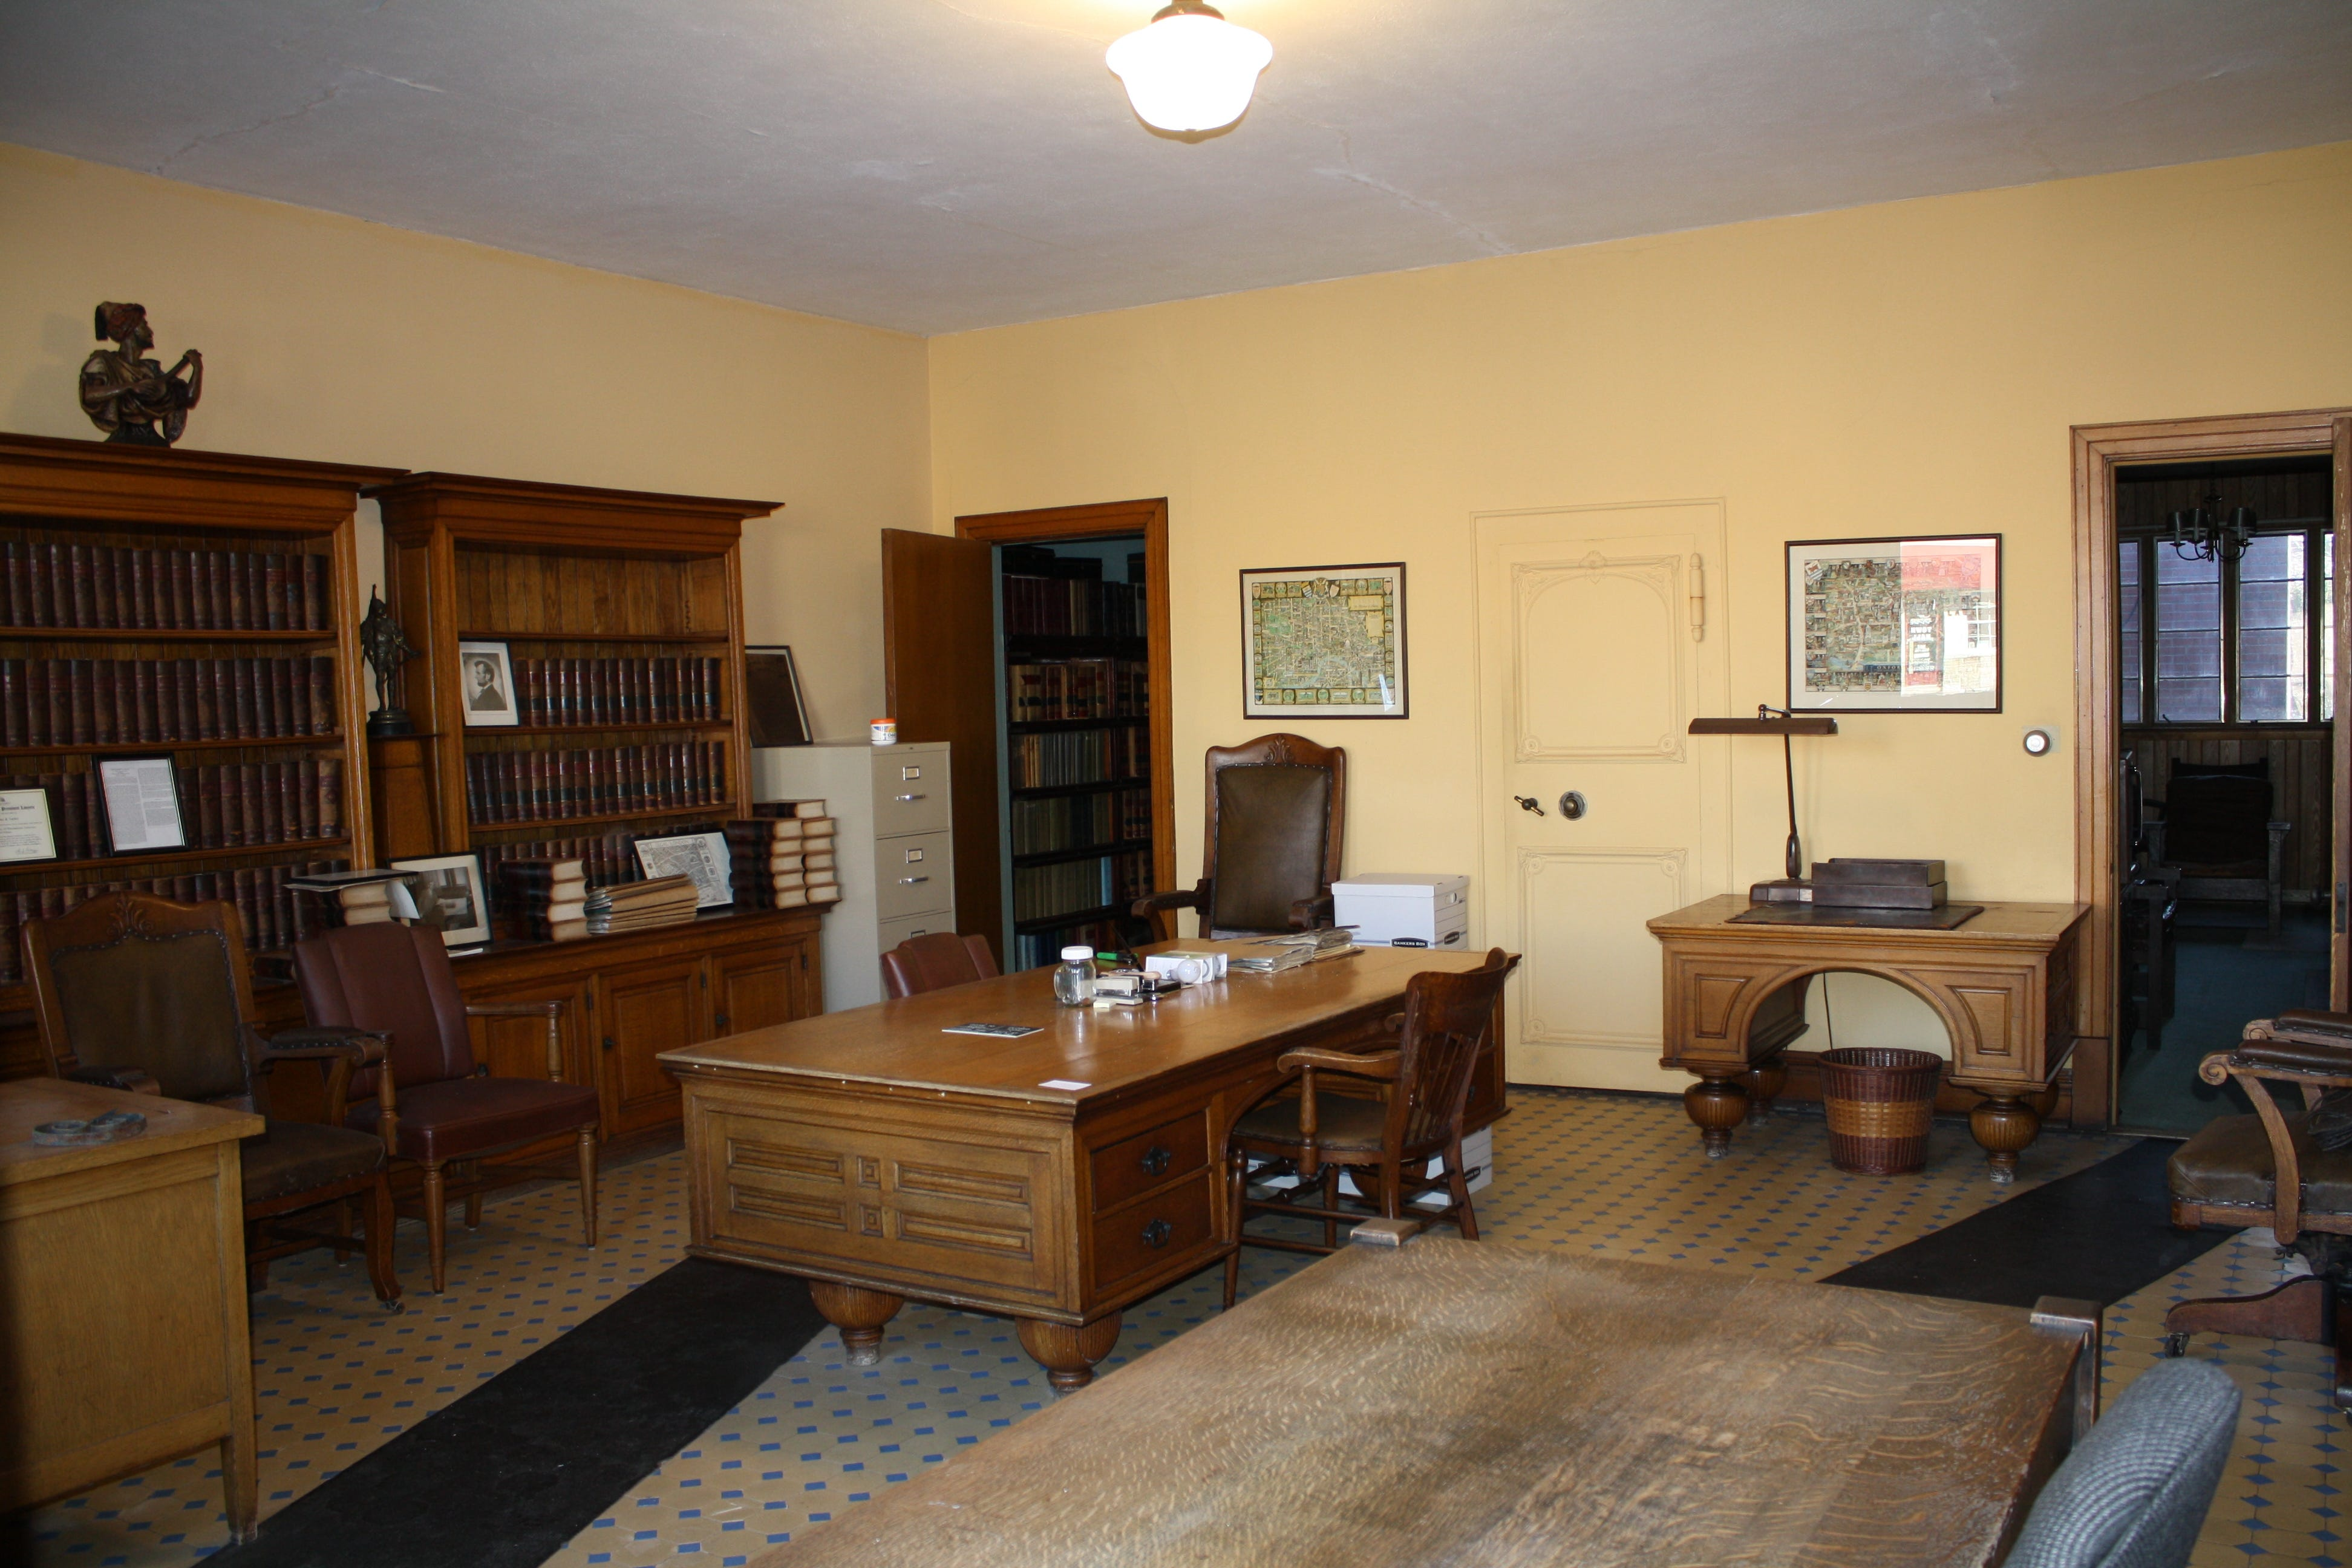 The Front Room At The Fraser U0026 Isham Law Office.